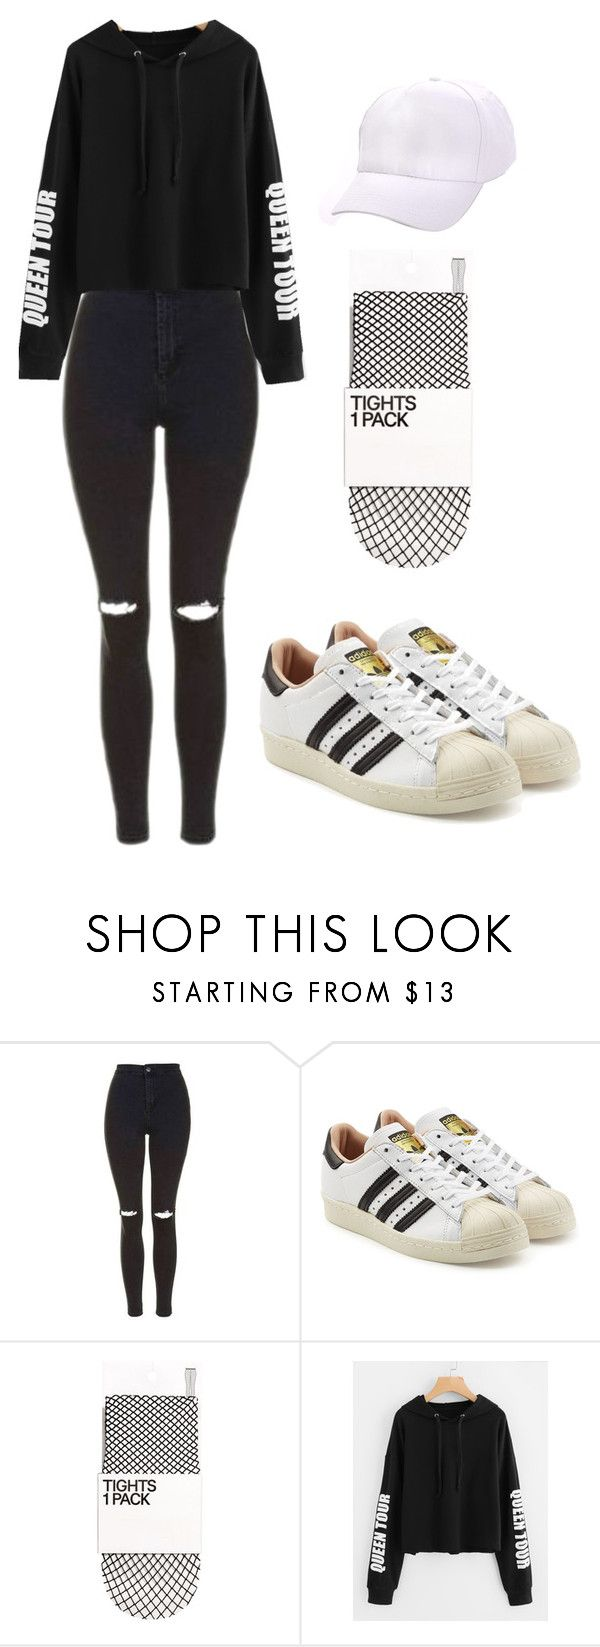 """Outfit"" by andreeadeeix12 ❤ liked on Polyvore featuring Topshop and adidas Originals"